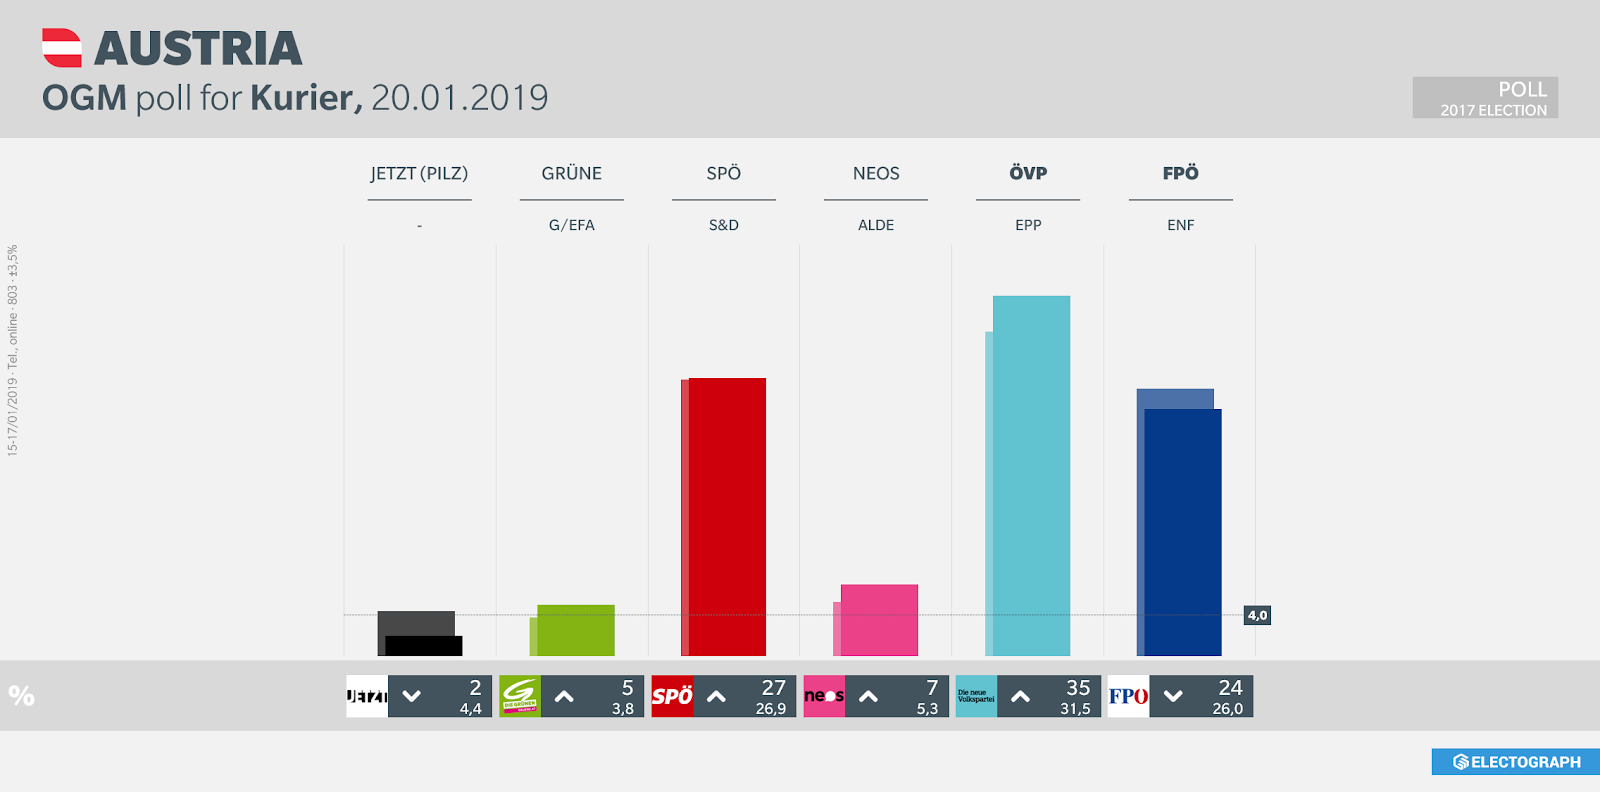 AUSTRIA: OGM poll chart for Kurier, 20 January 2019